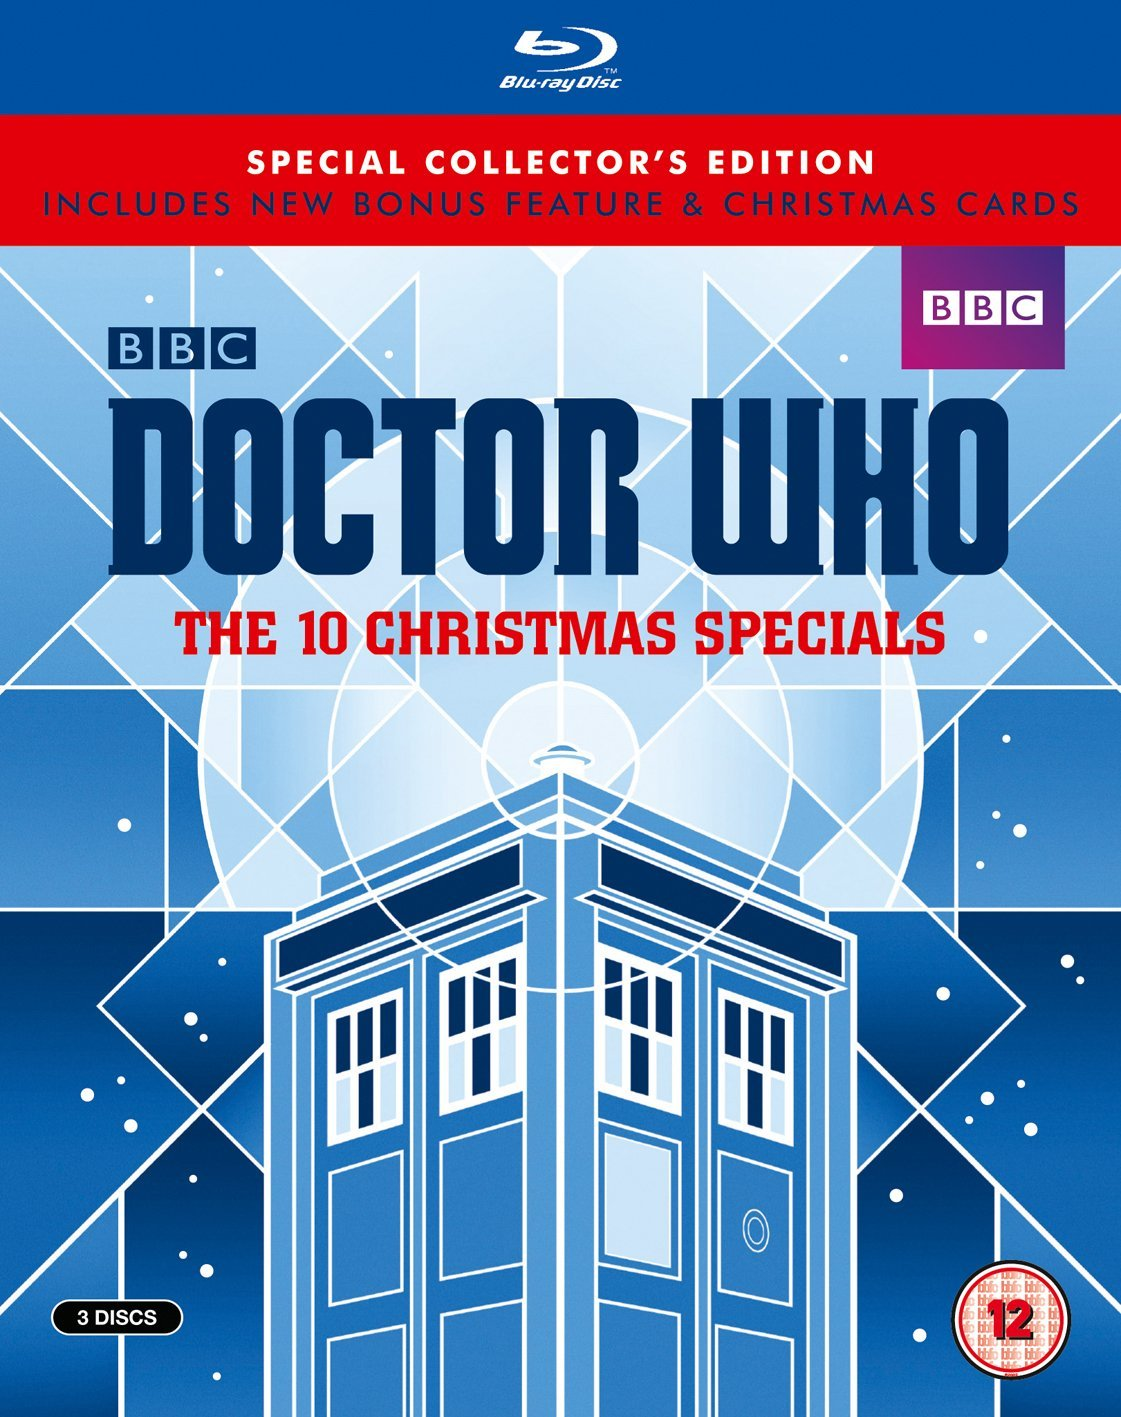 Just spotted a new gift idea for Doctor Who fans this Christmas.